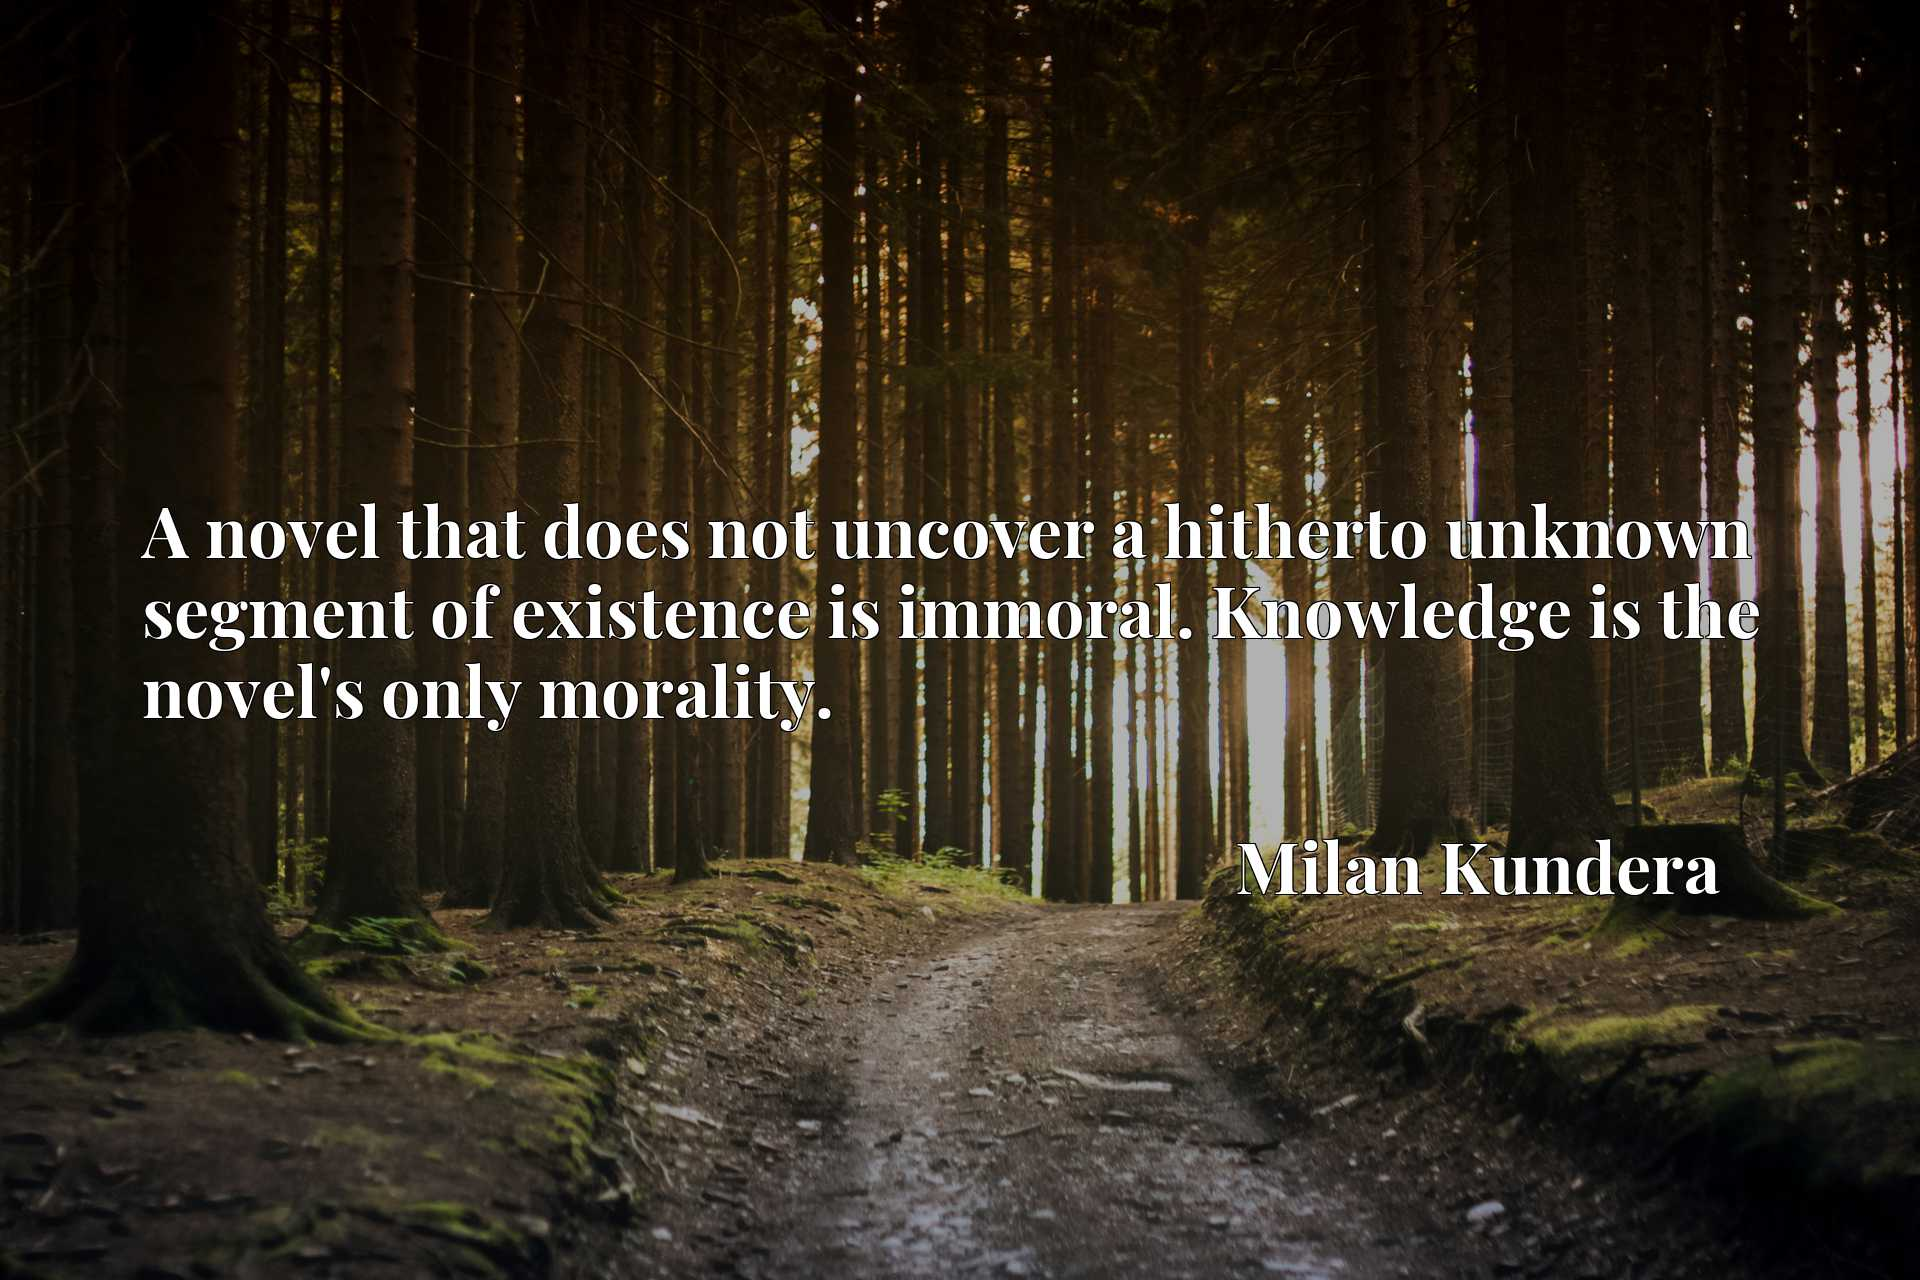 A novel that does not uncover a hitherto unknown segment of existence is immoral. Knowledge is the novel's only morality.